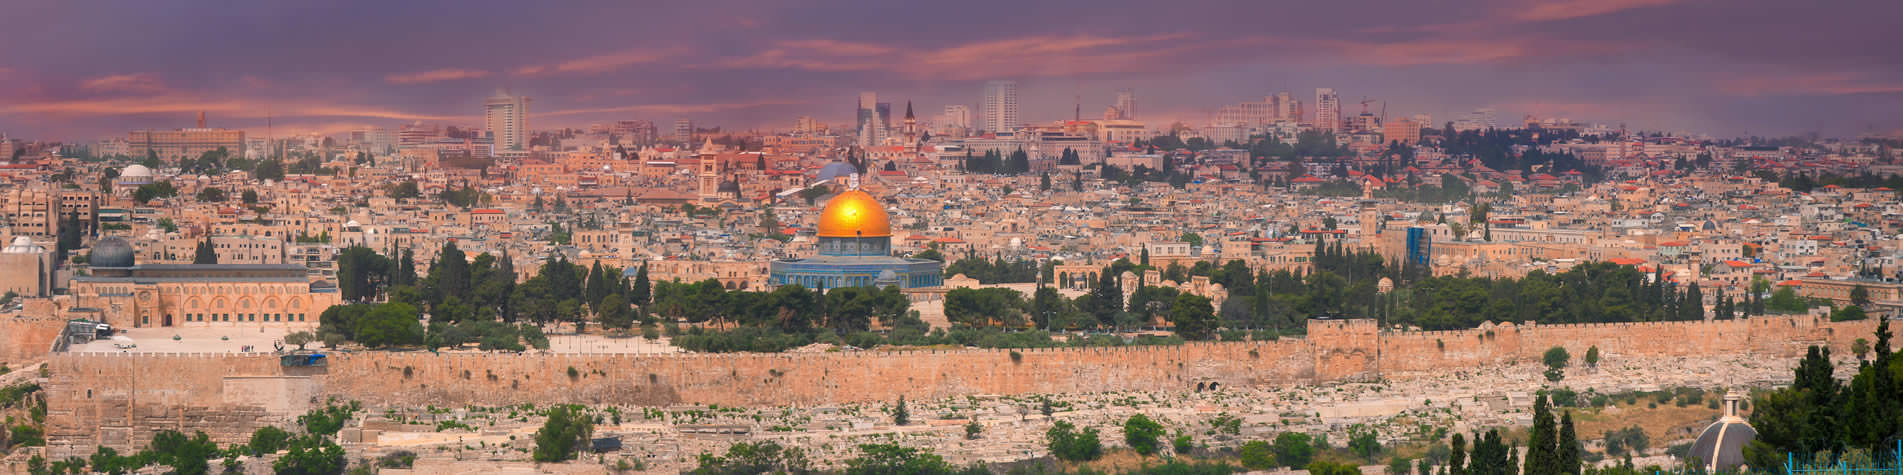 Jerusalem Holidays